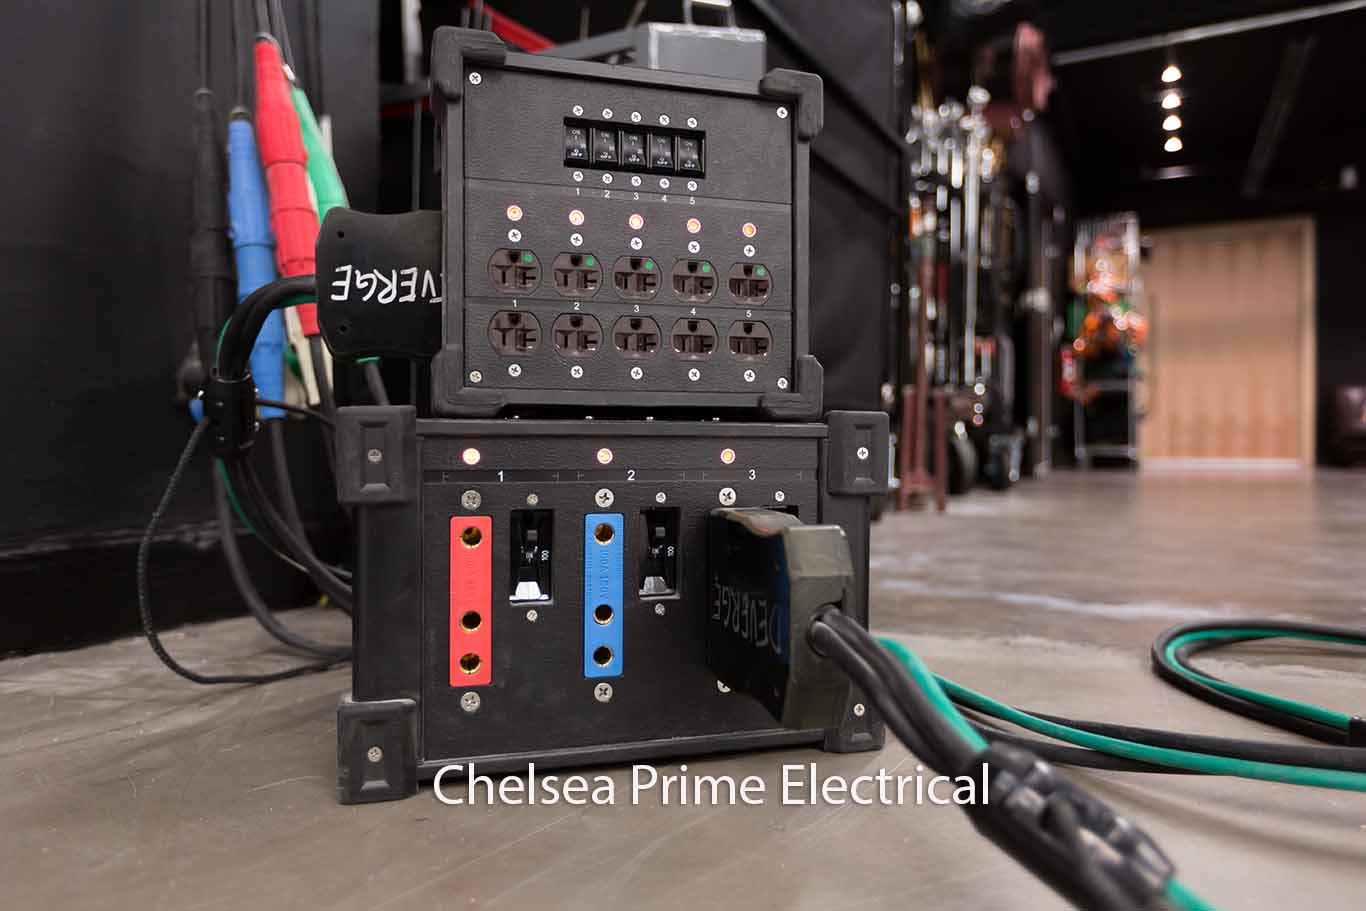 Chelsea Prime Electrical